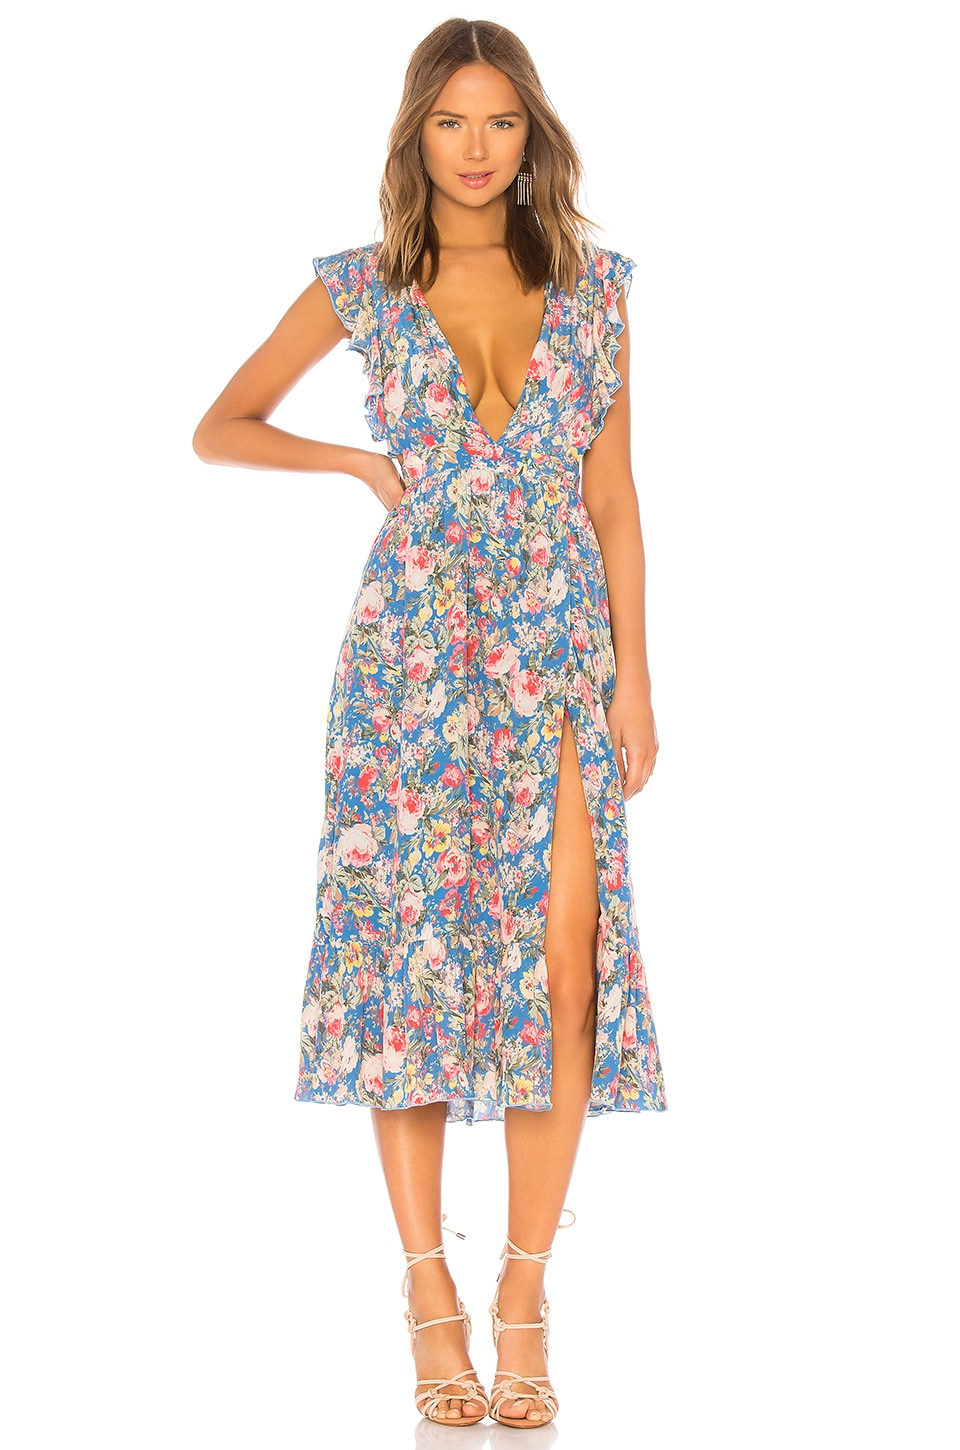 MAJORELLE Mistwood Dress in Blue Multi